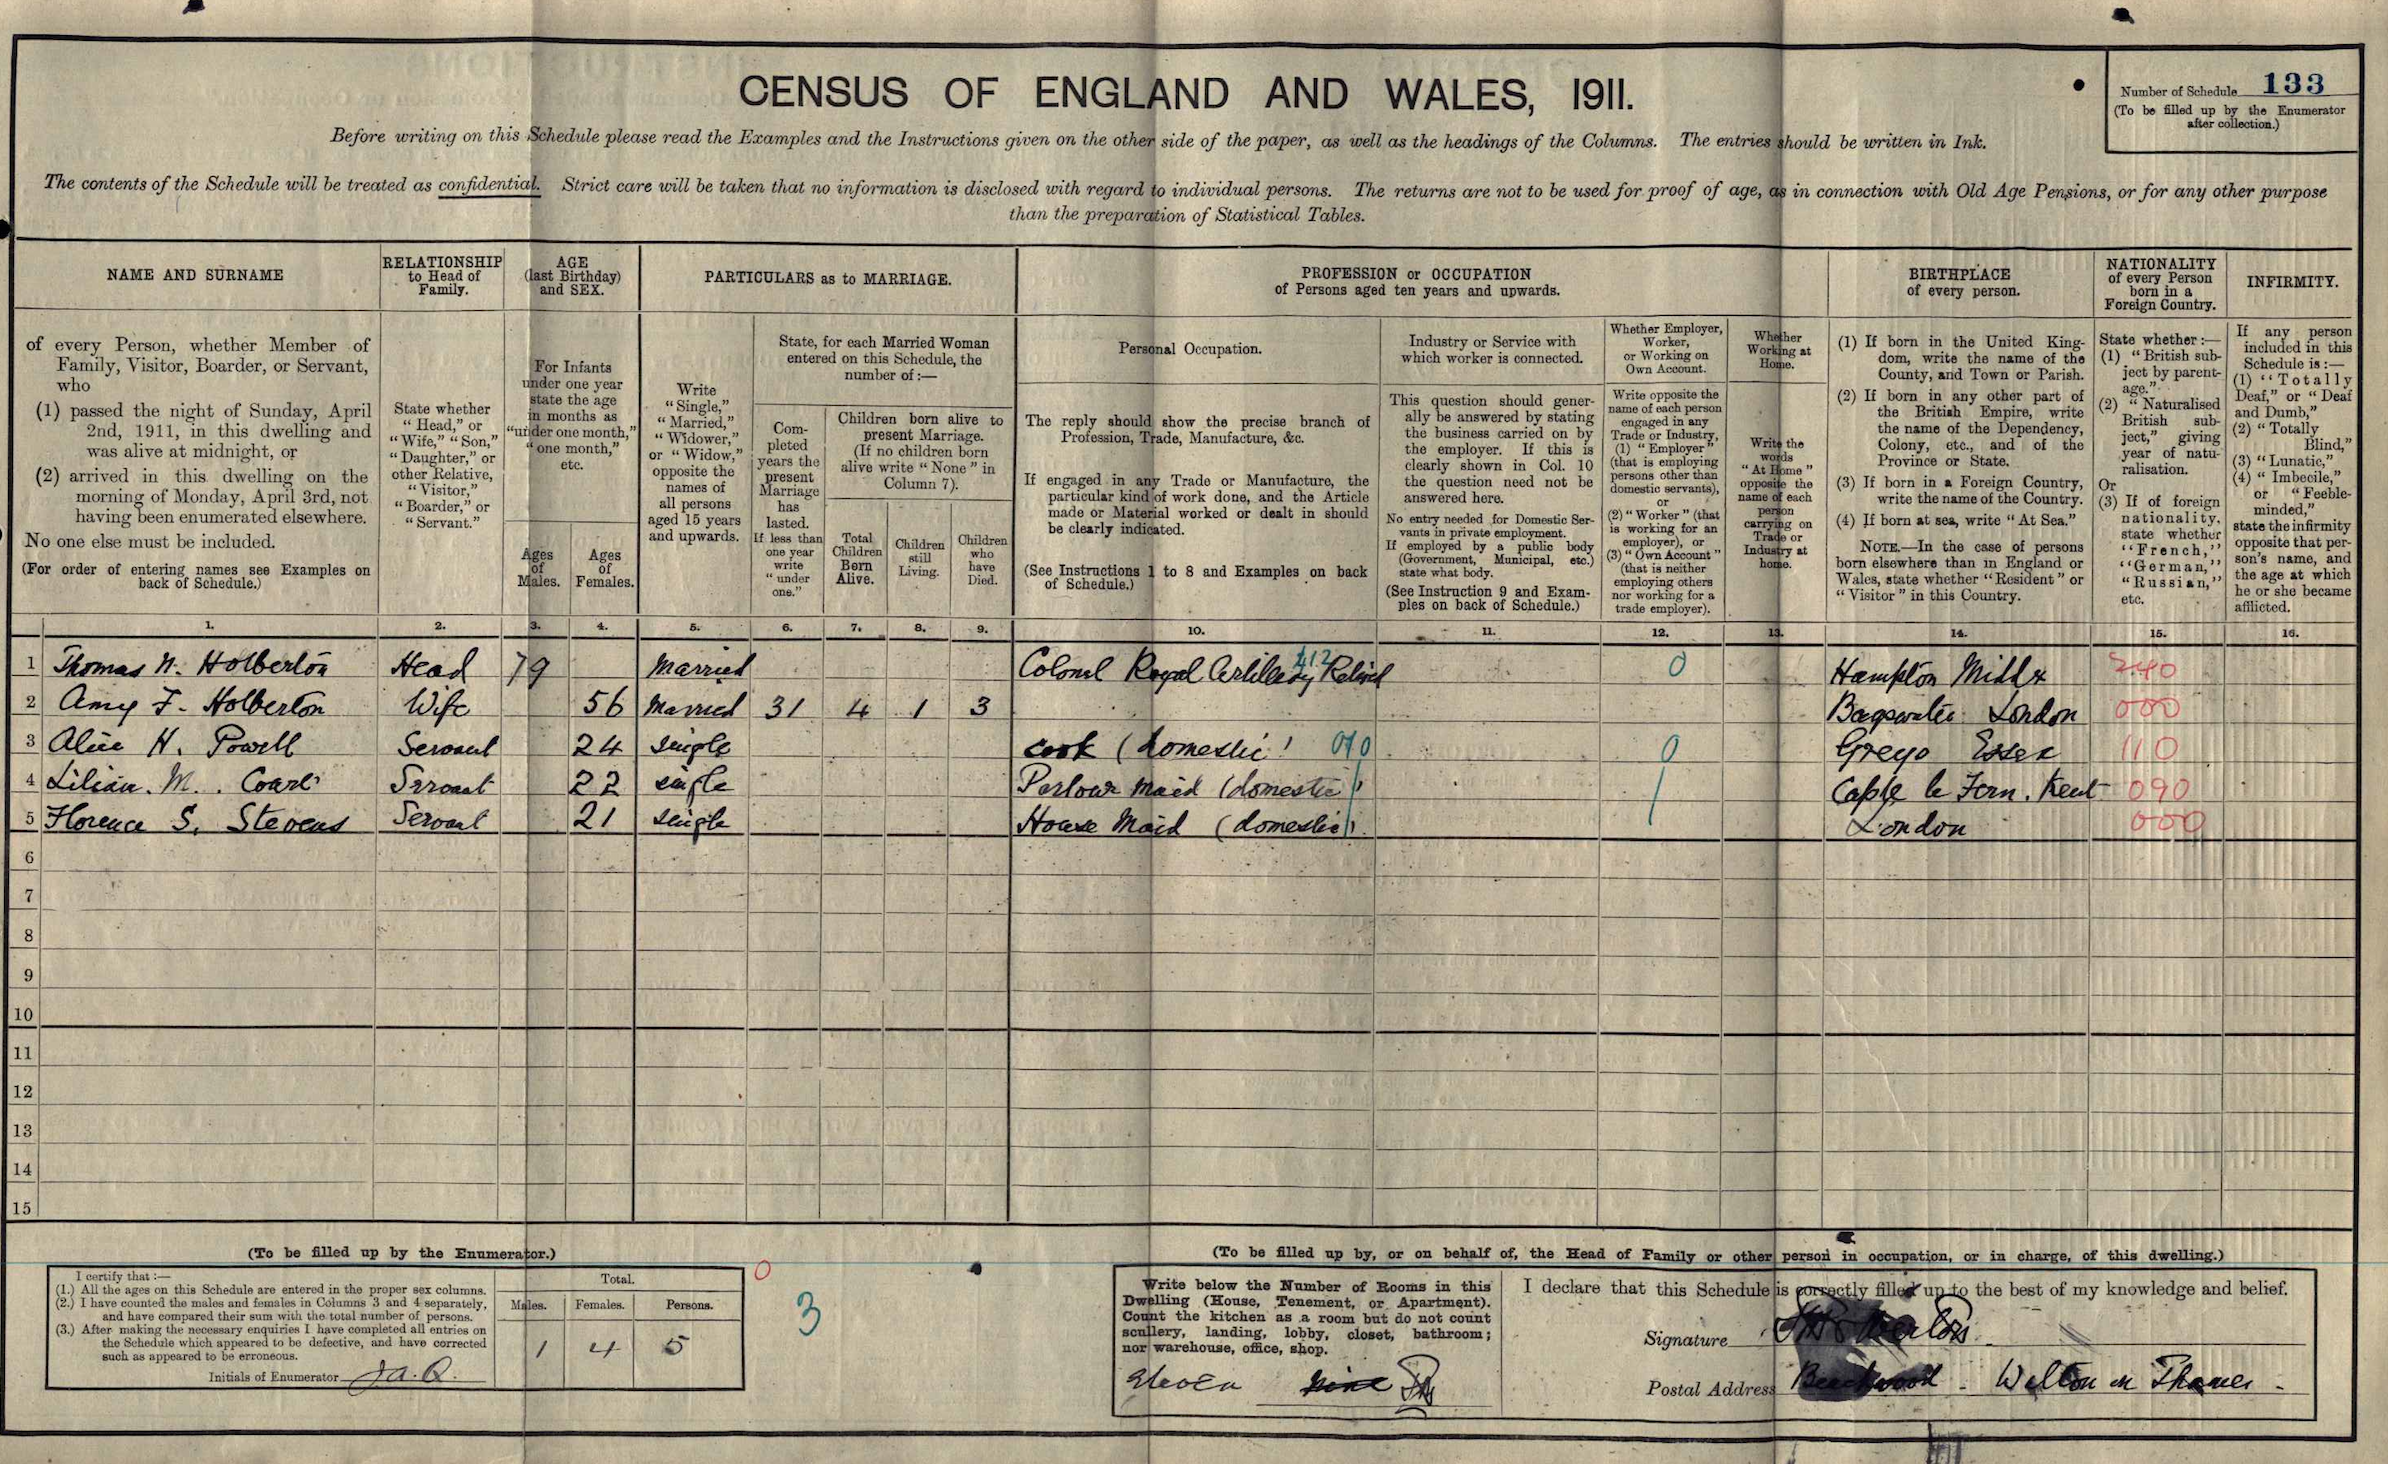 Thomas Nelson Holberton on 1911 census